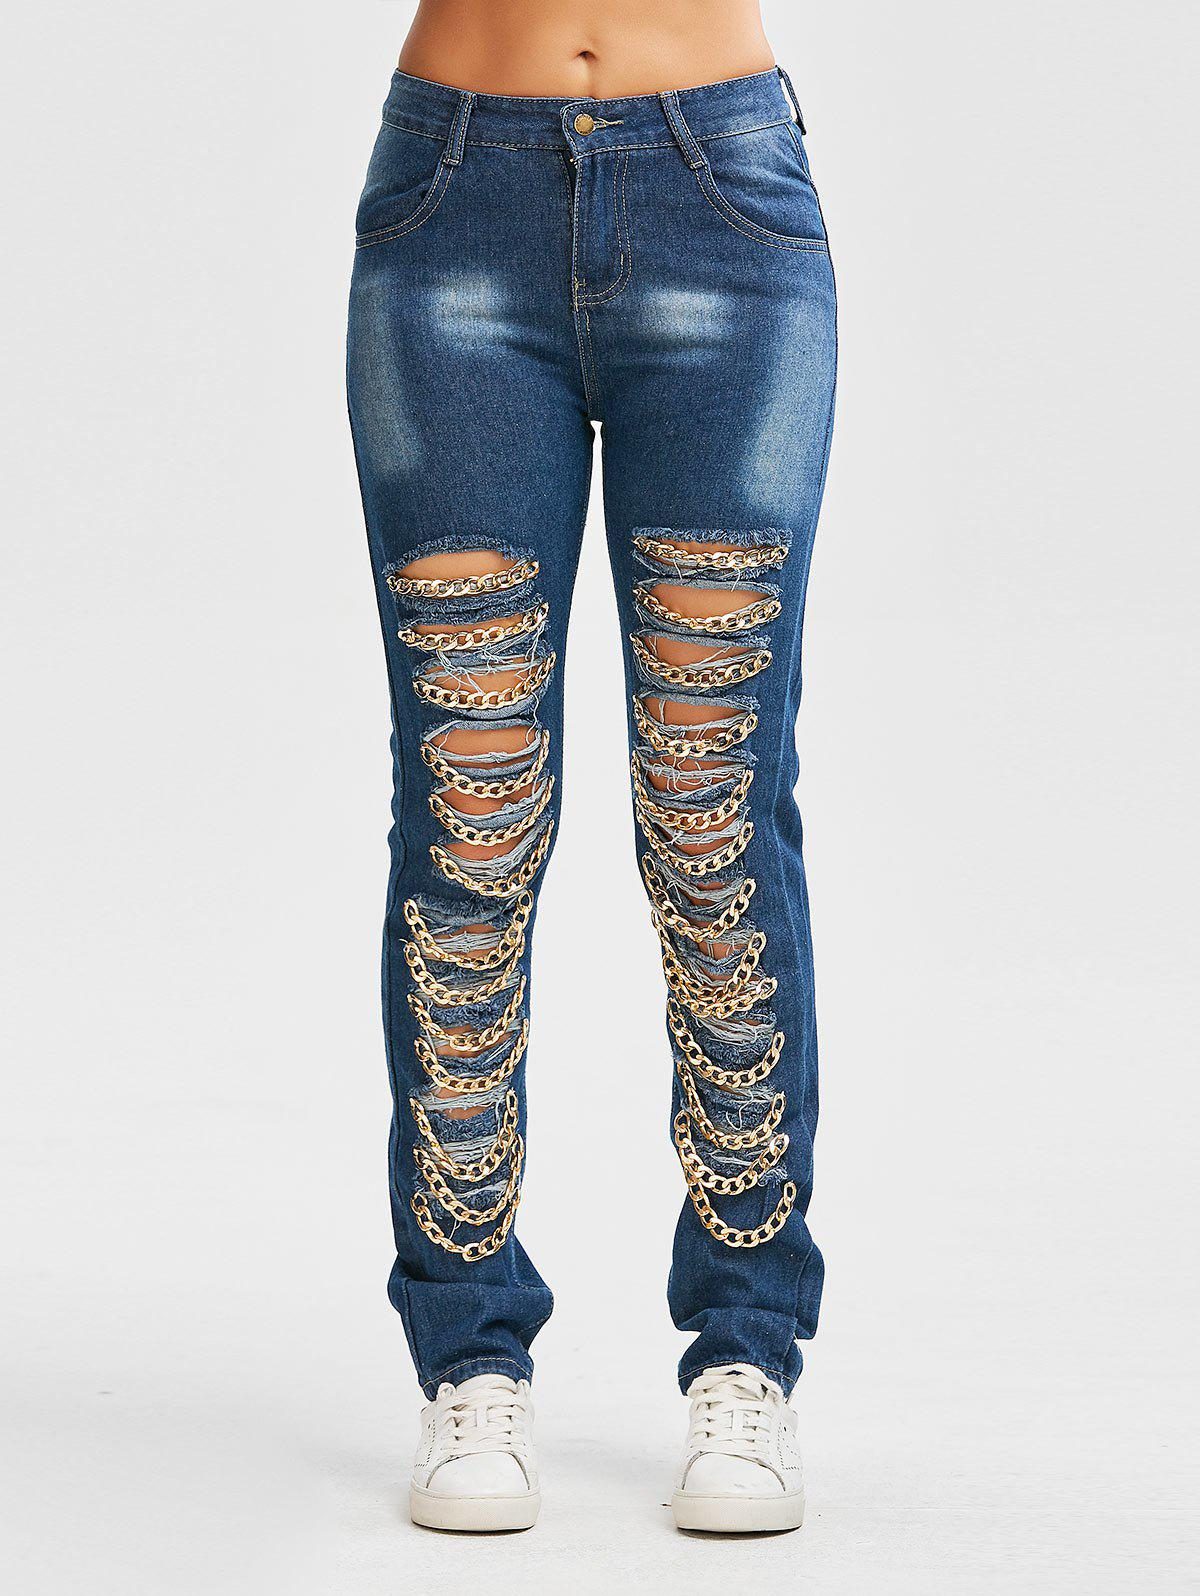 Chain Design Distressed Jeans - CERULEAN S